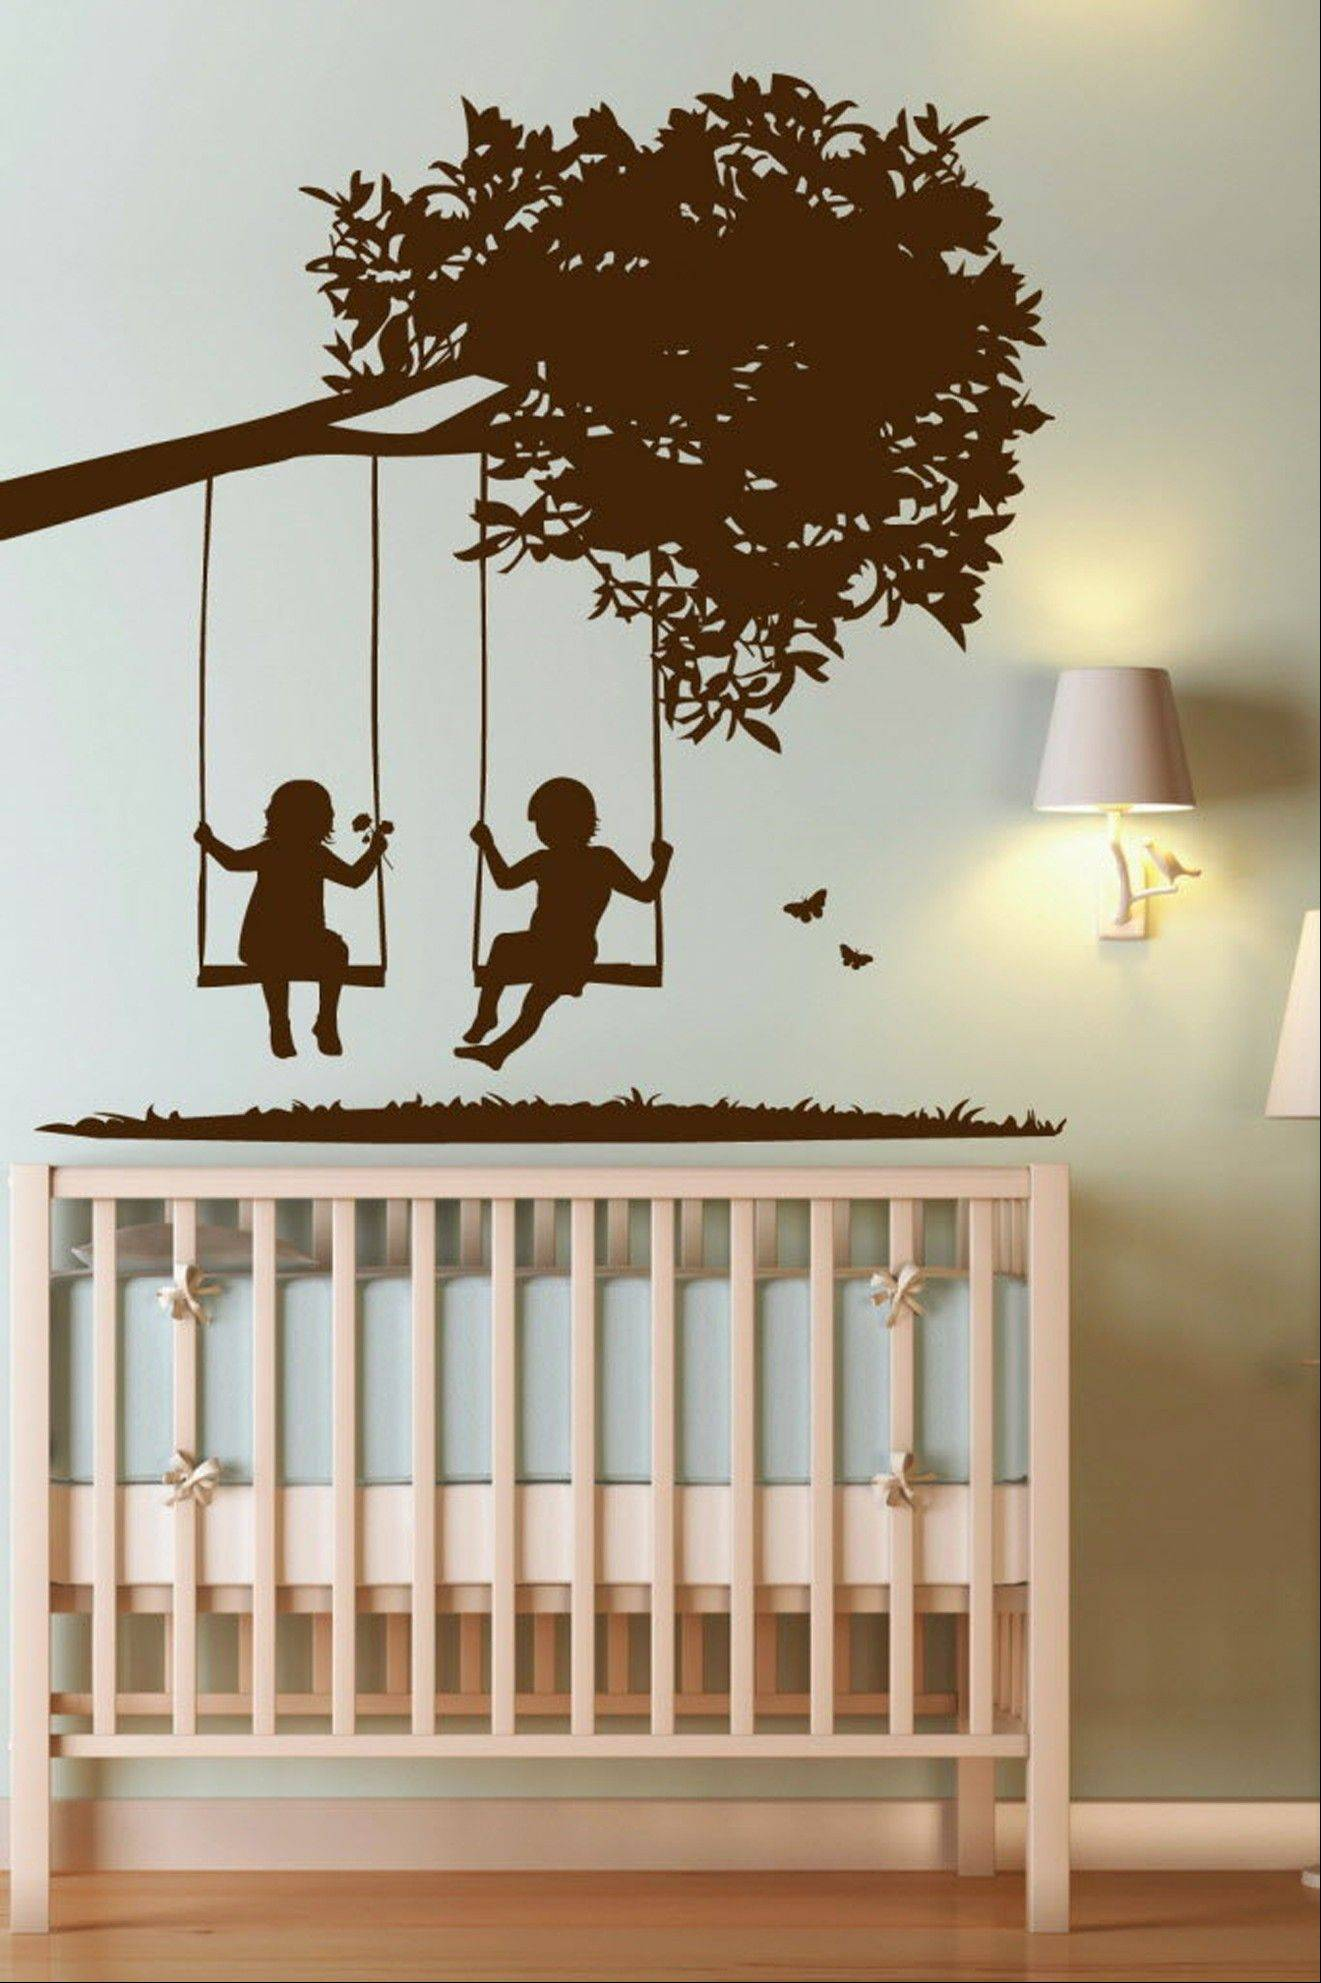 The Kids on Swings decal is a popular choice for parents decorating nurseries. Parents like the flexibility of wall decals that can be easily changed as kids grow.